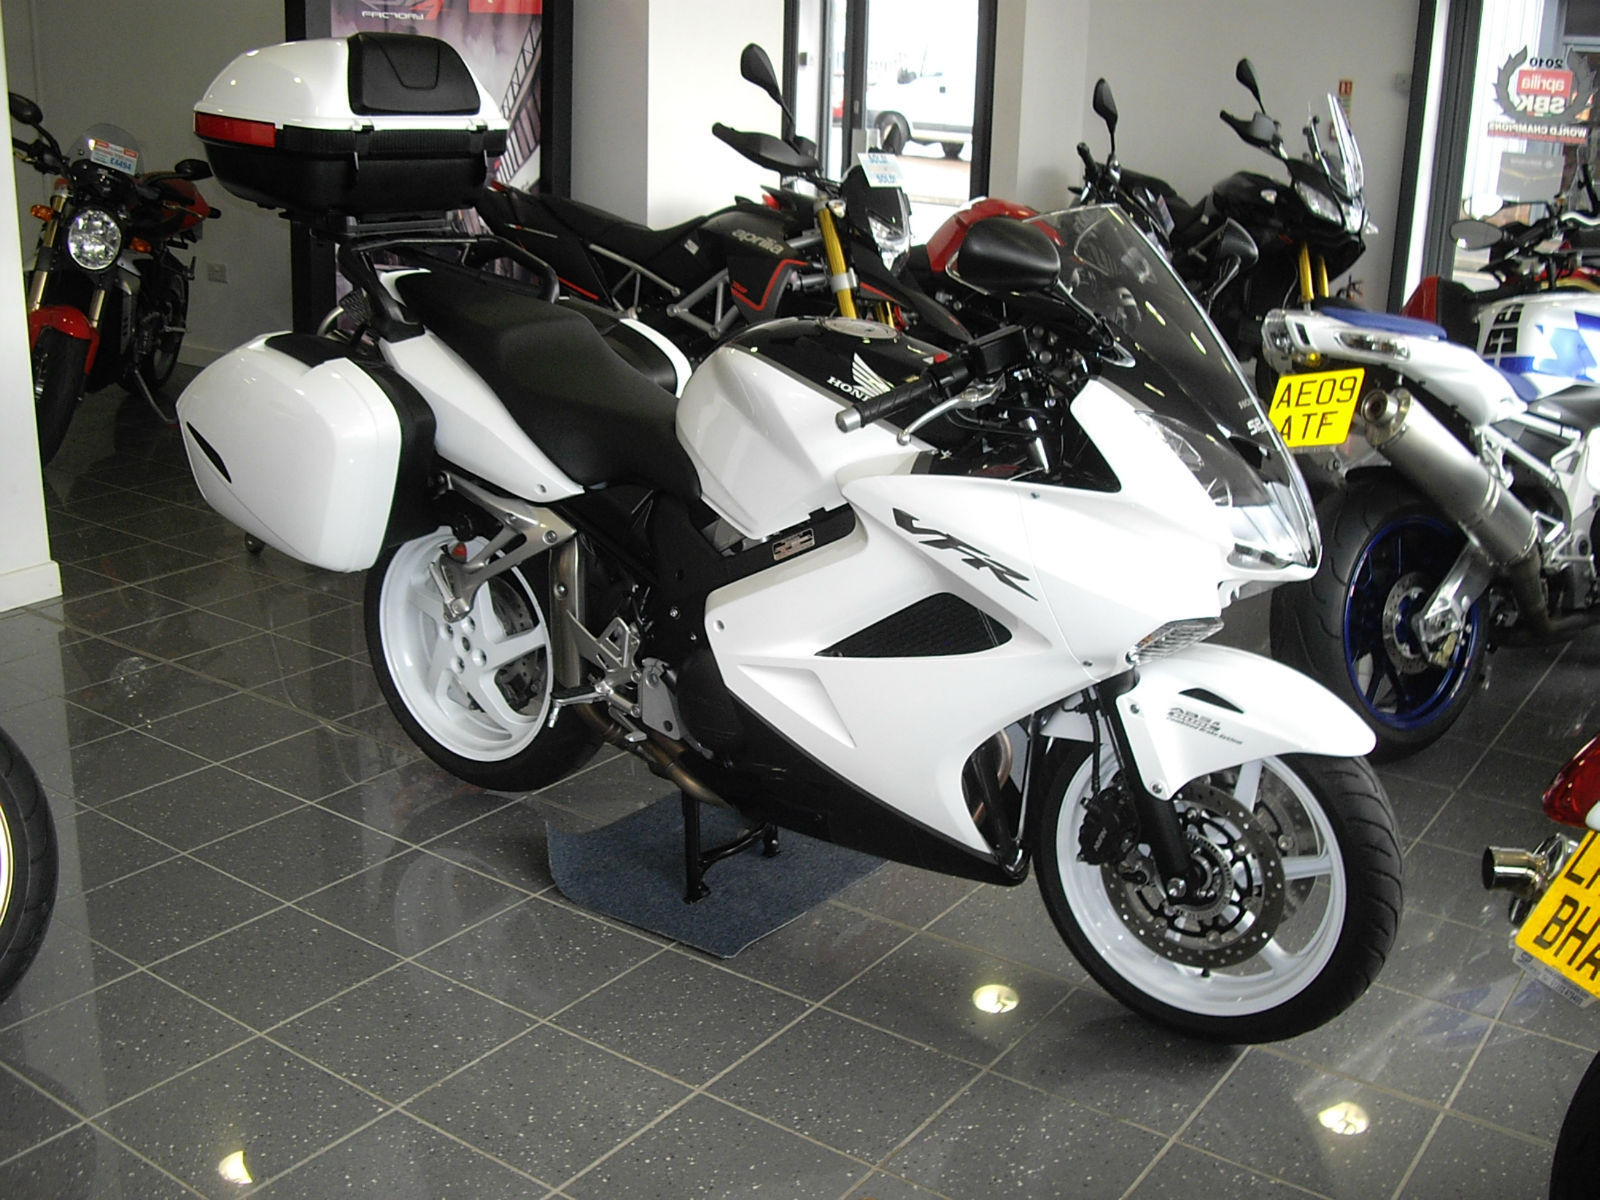 United Luggage Size Honda Vfr 800 A 9 Abs